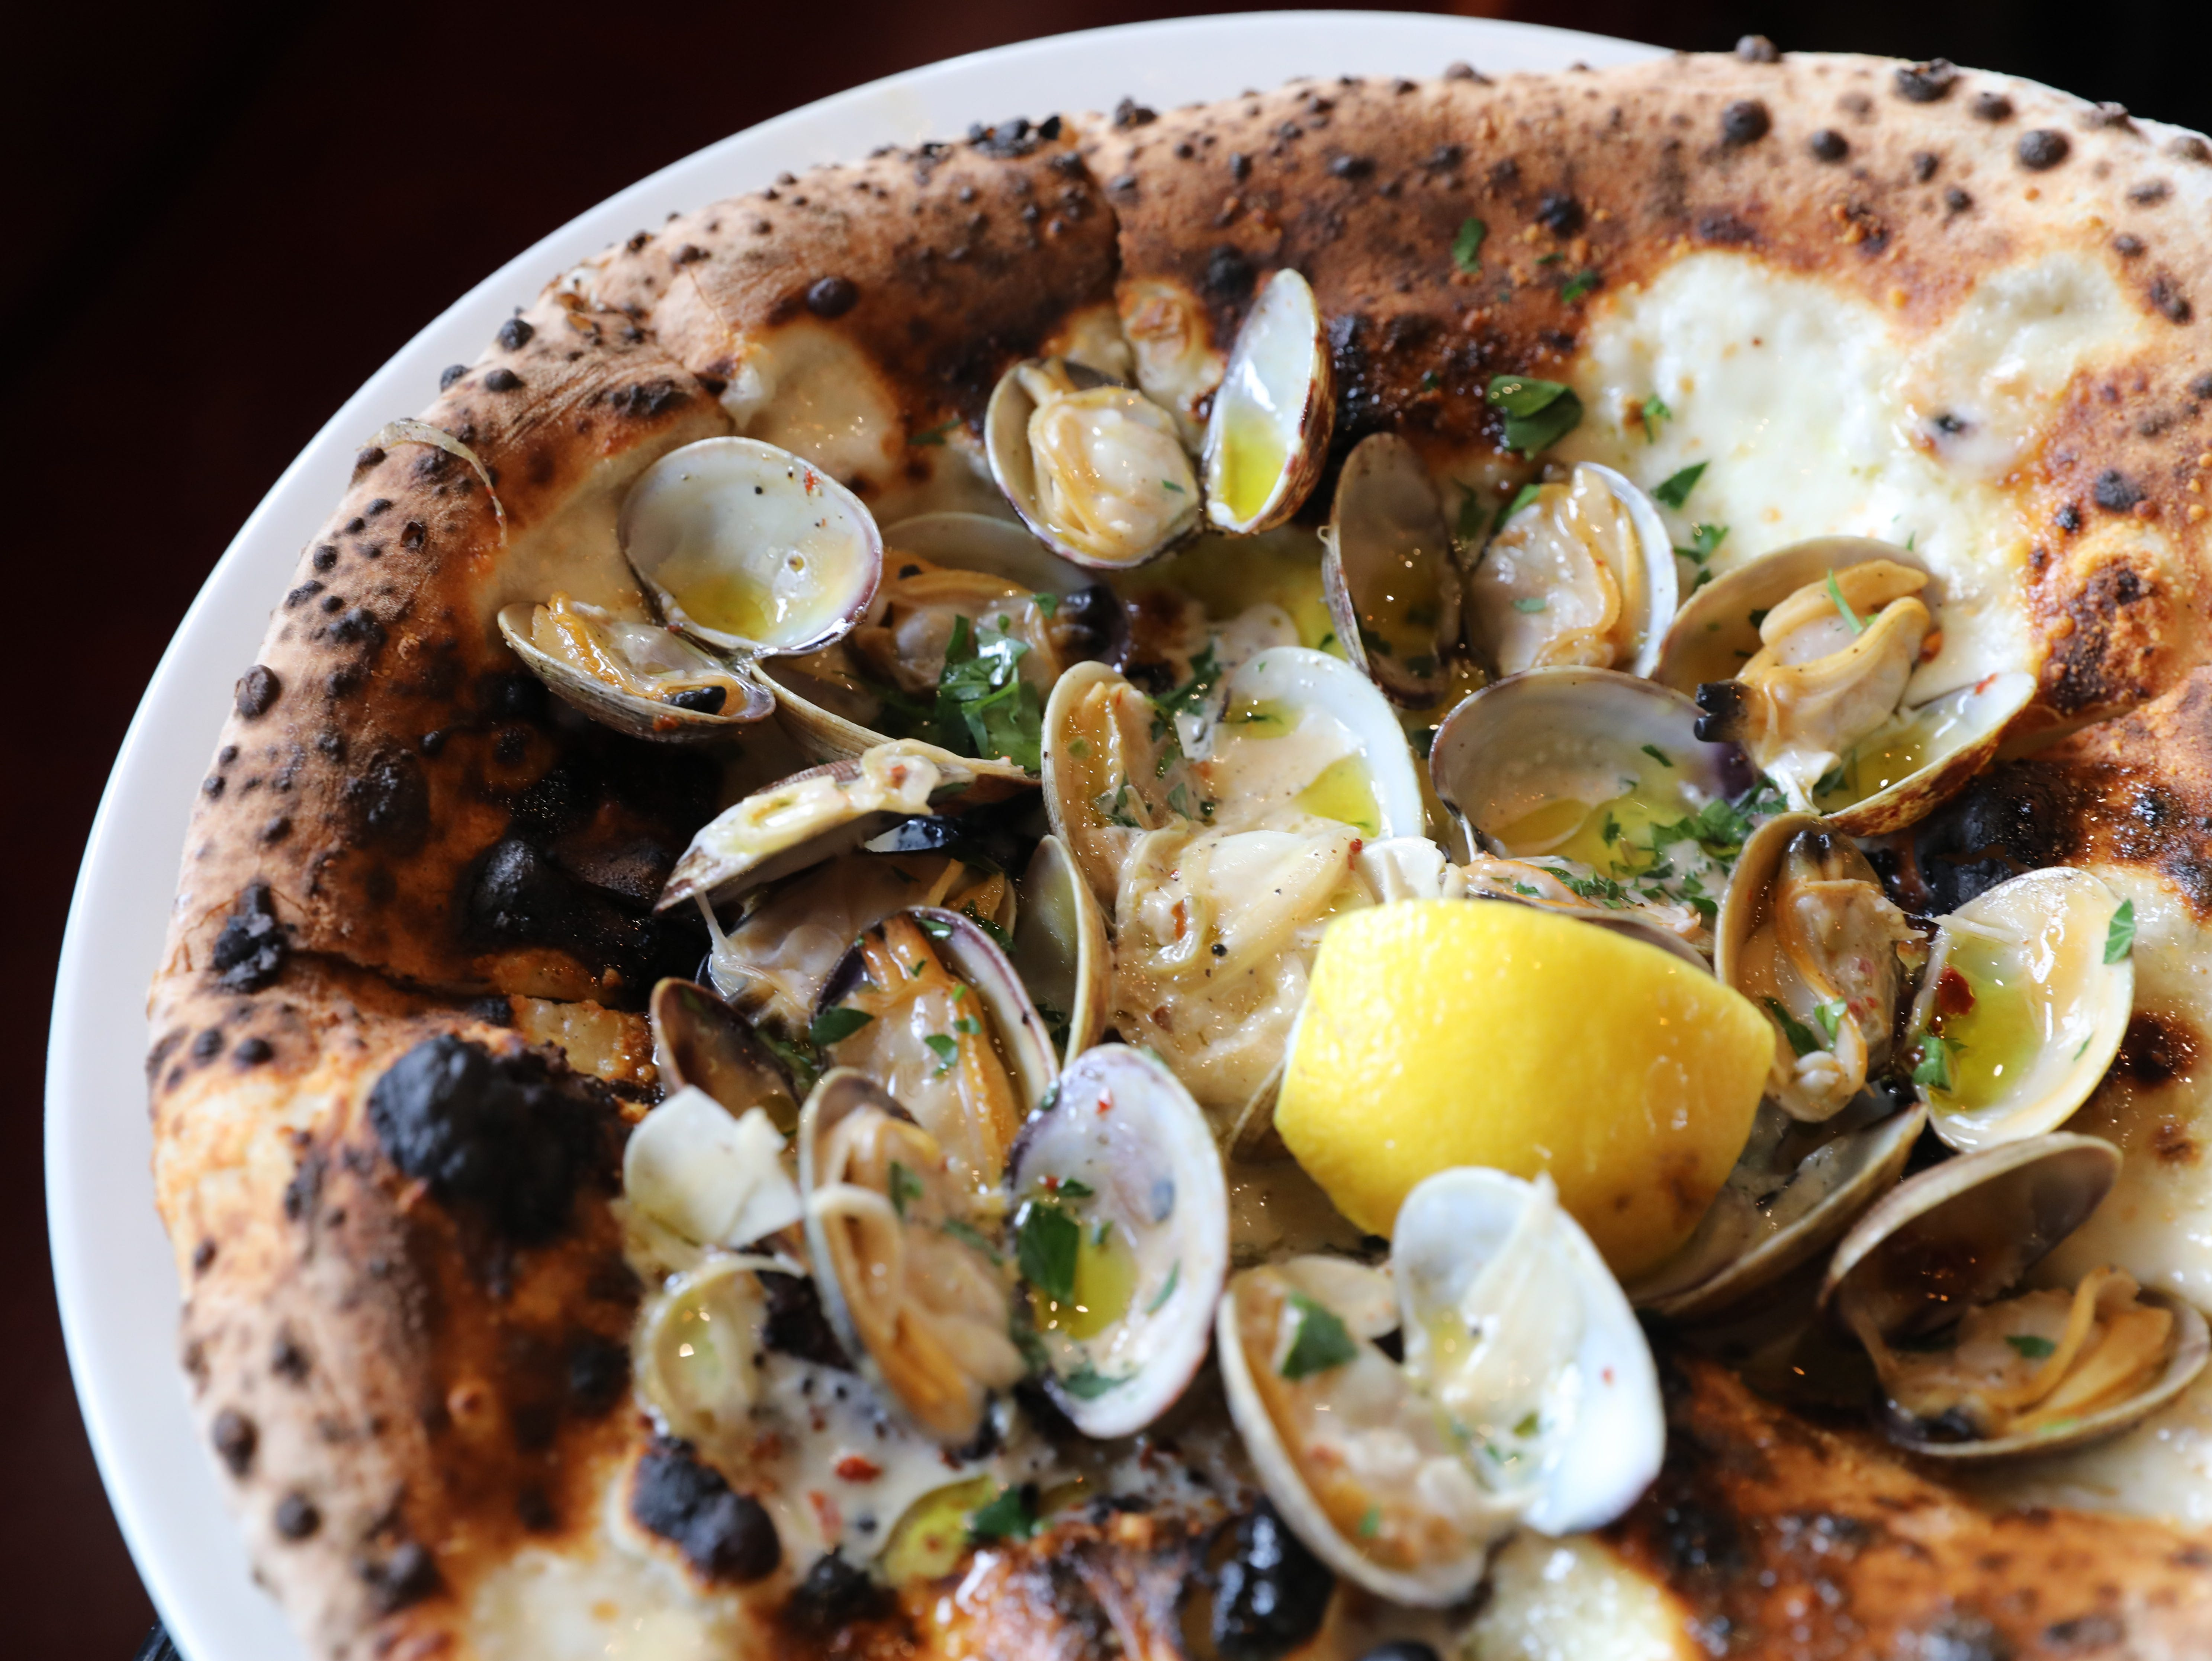 The Locali Clam Pizza at Locali Pizza Bar and Kitchen in the Mount Kisco, March 8, 2019.